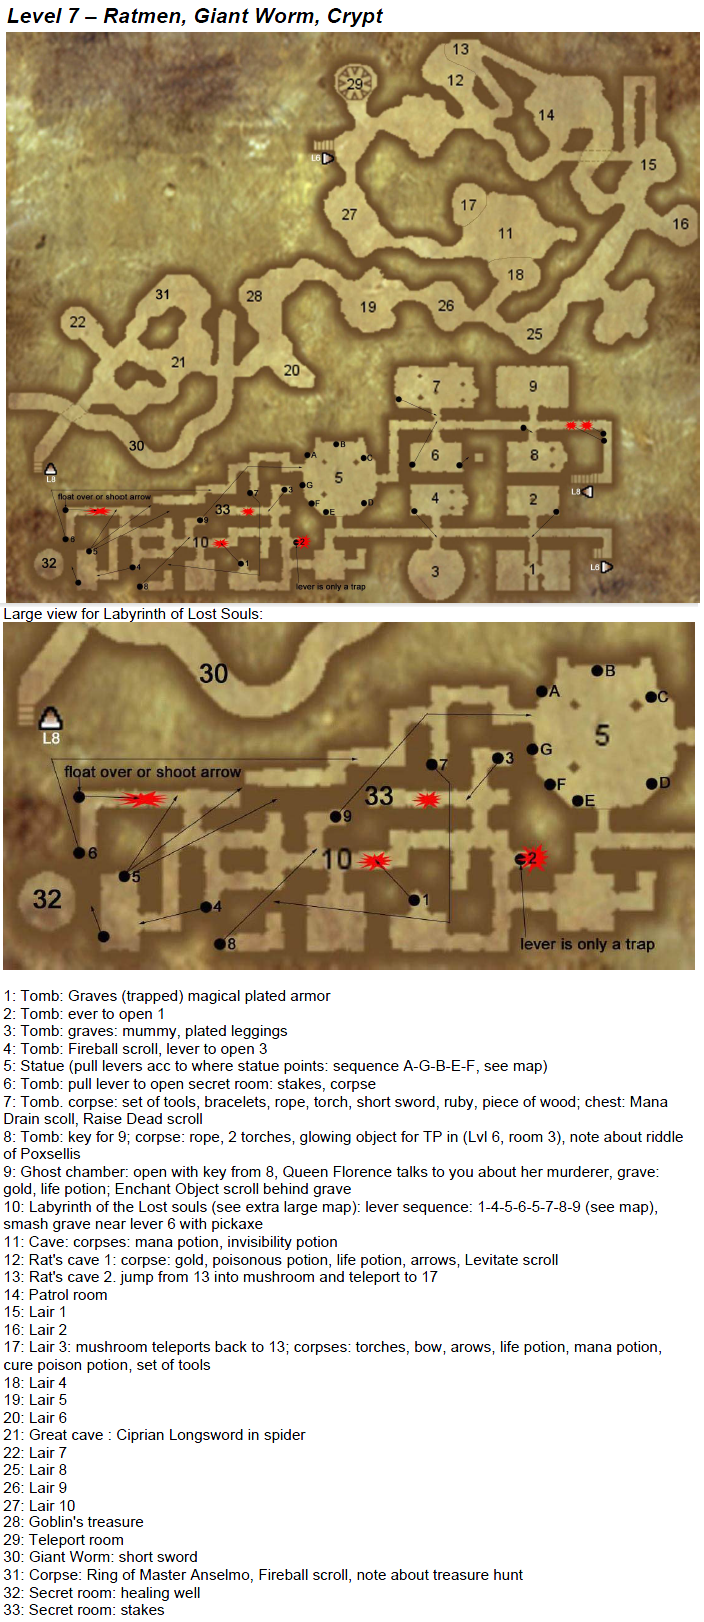 Arx Fatalis - map level 7